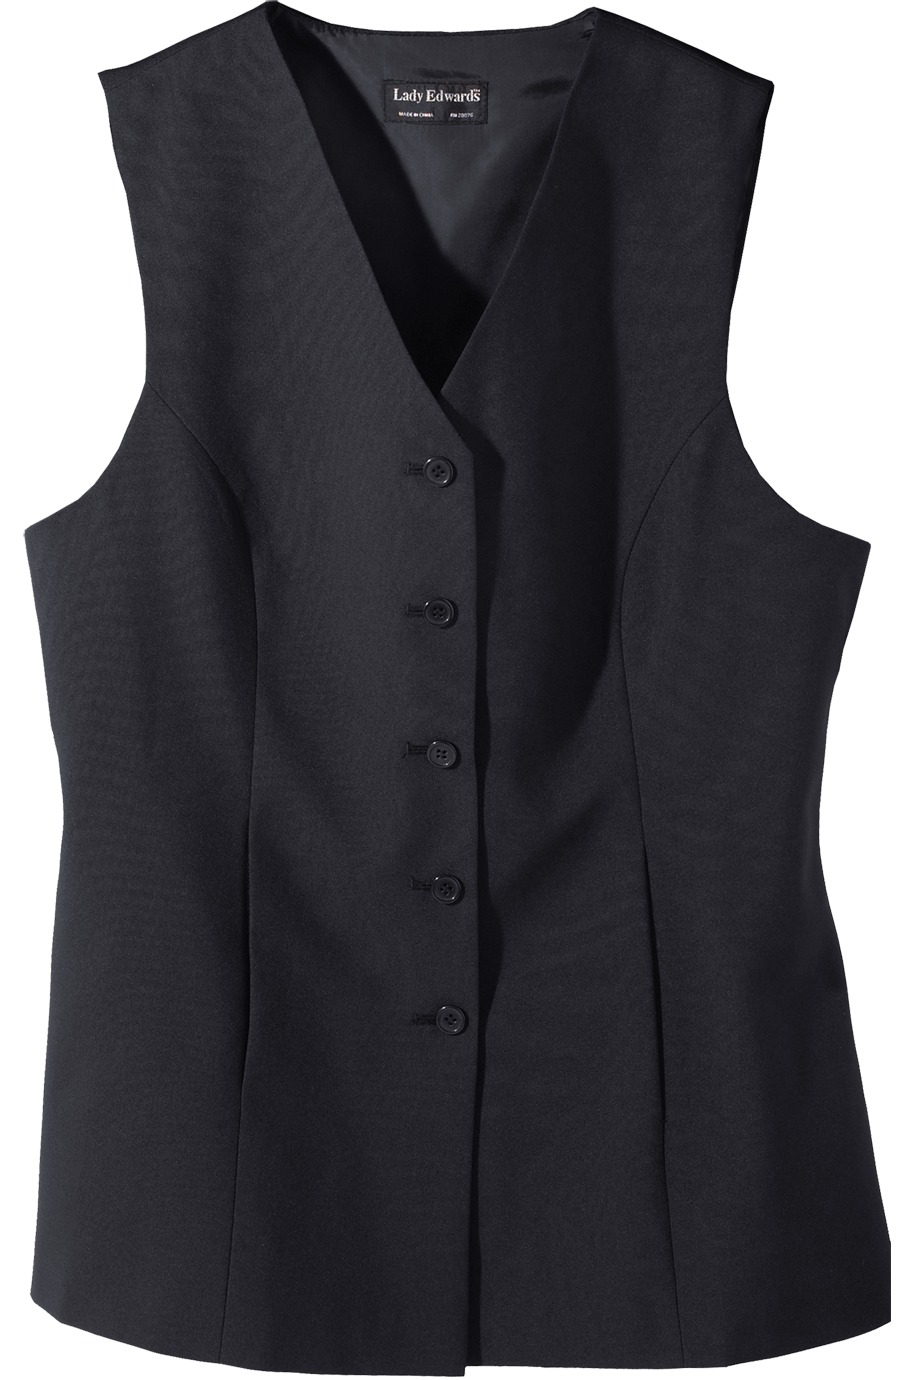 Edwards Garment 7270 - Women's Tunic Vest